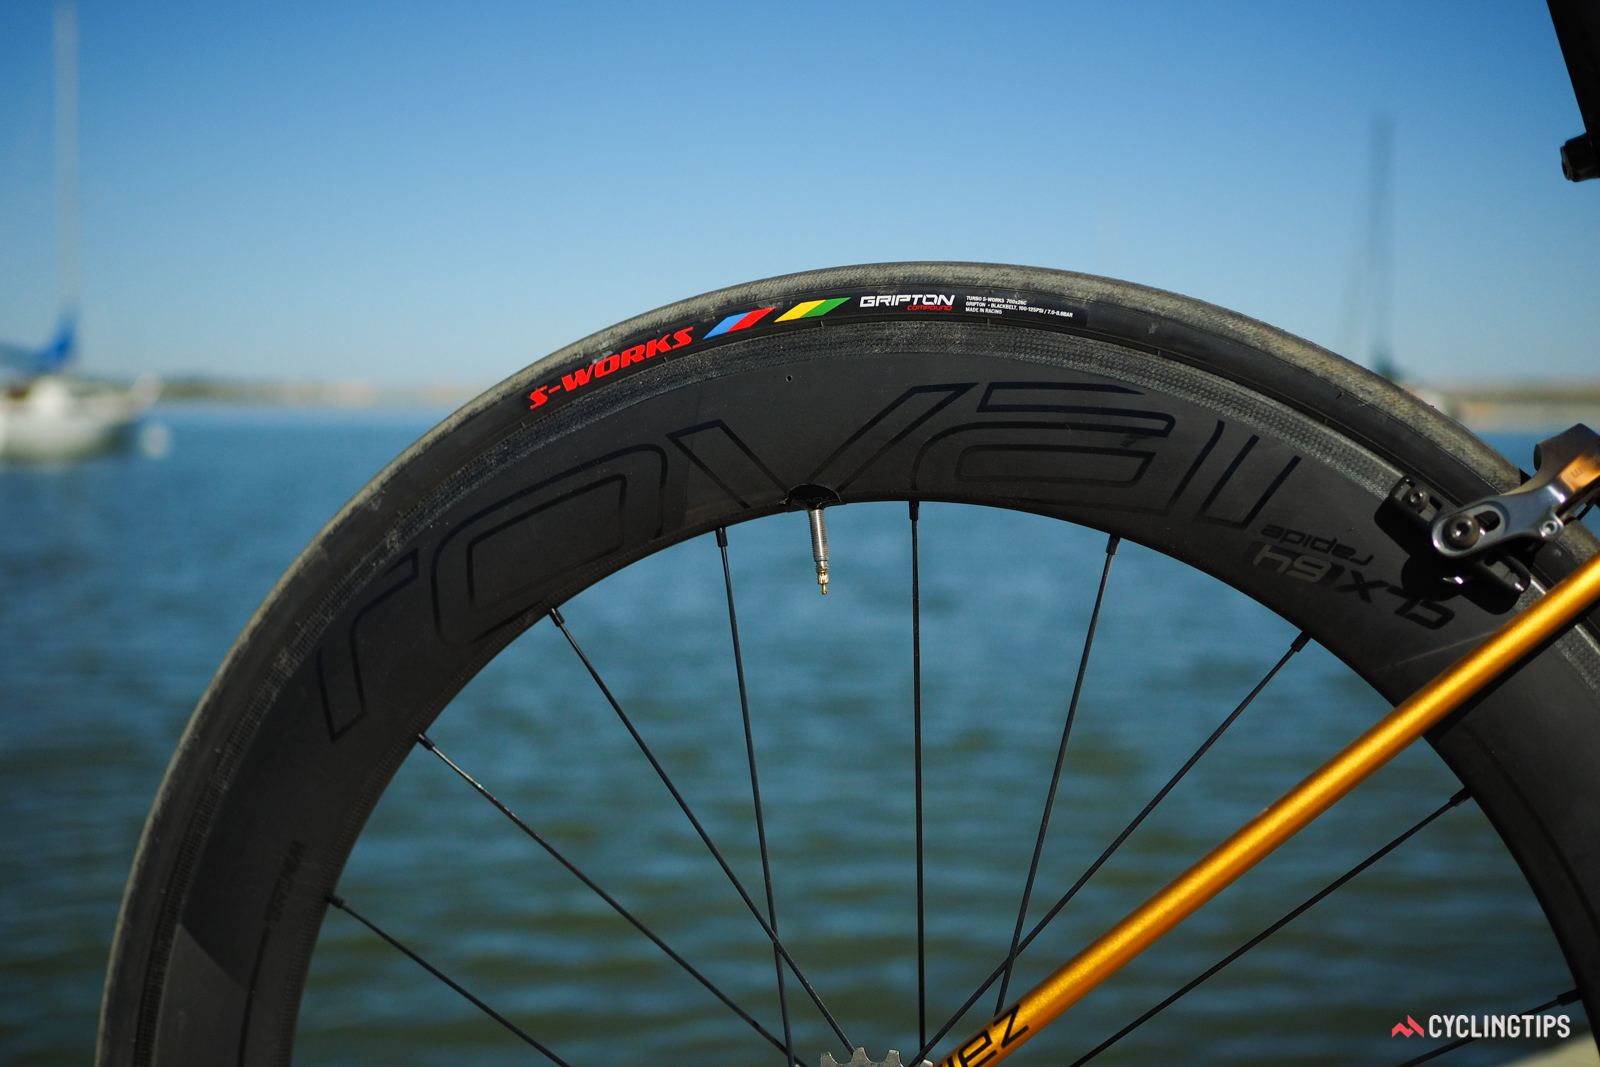 The included Roval Rapide CLX 64 carbon clincher wheels are plenty fast and reasonably stable in crosswinds. The S-Works tires are flat-out excellent, with extremely low rolling resistance and outstanding grip. They're quite fragile, though.